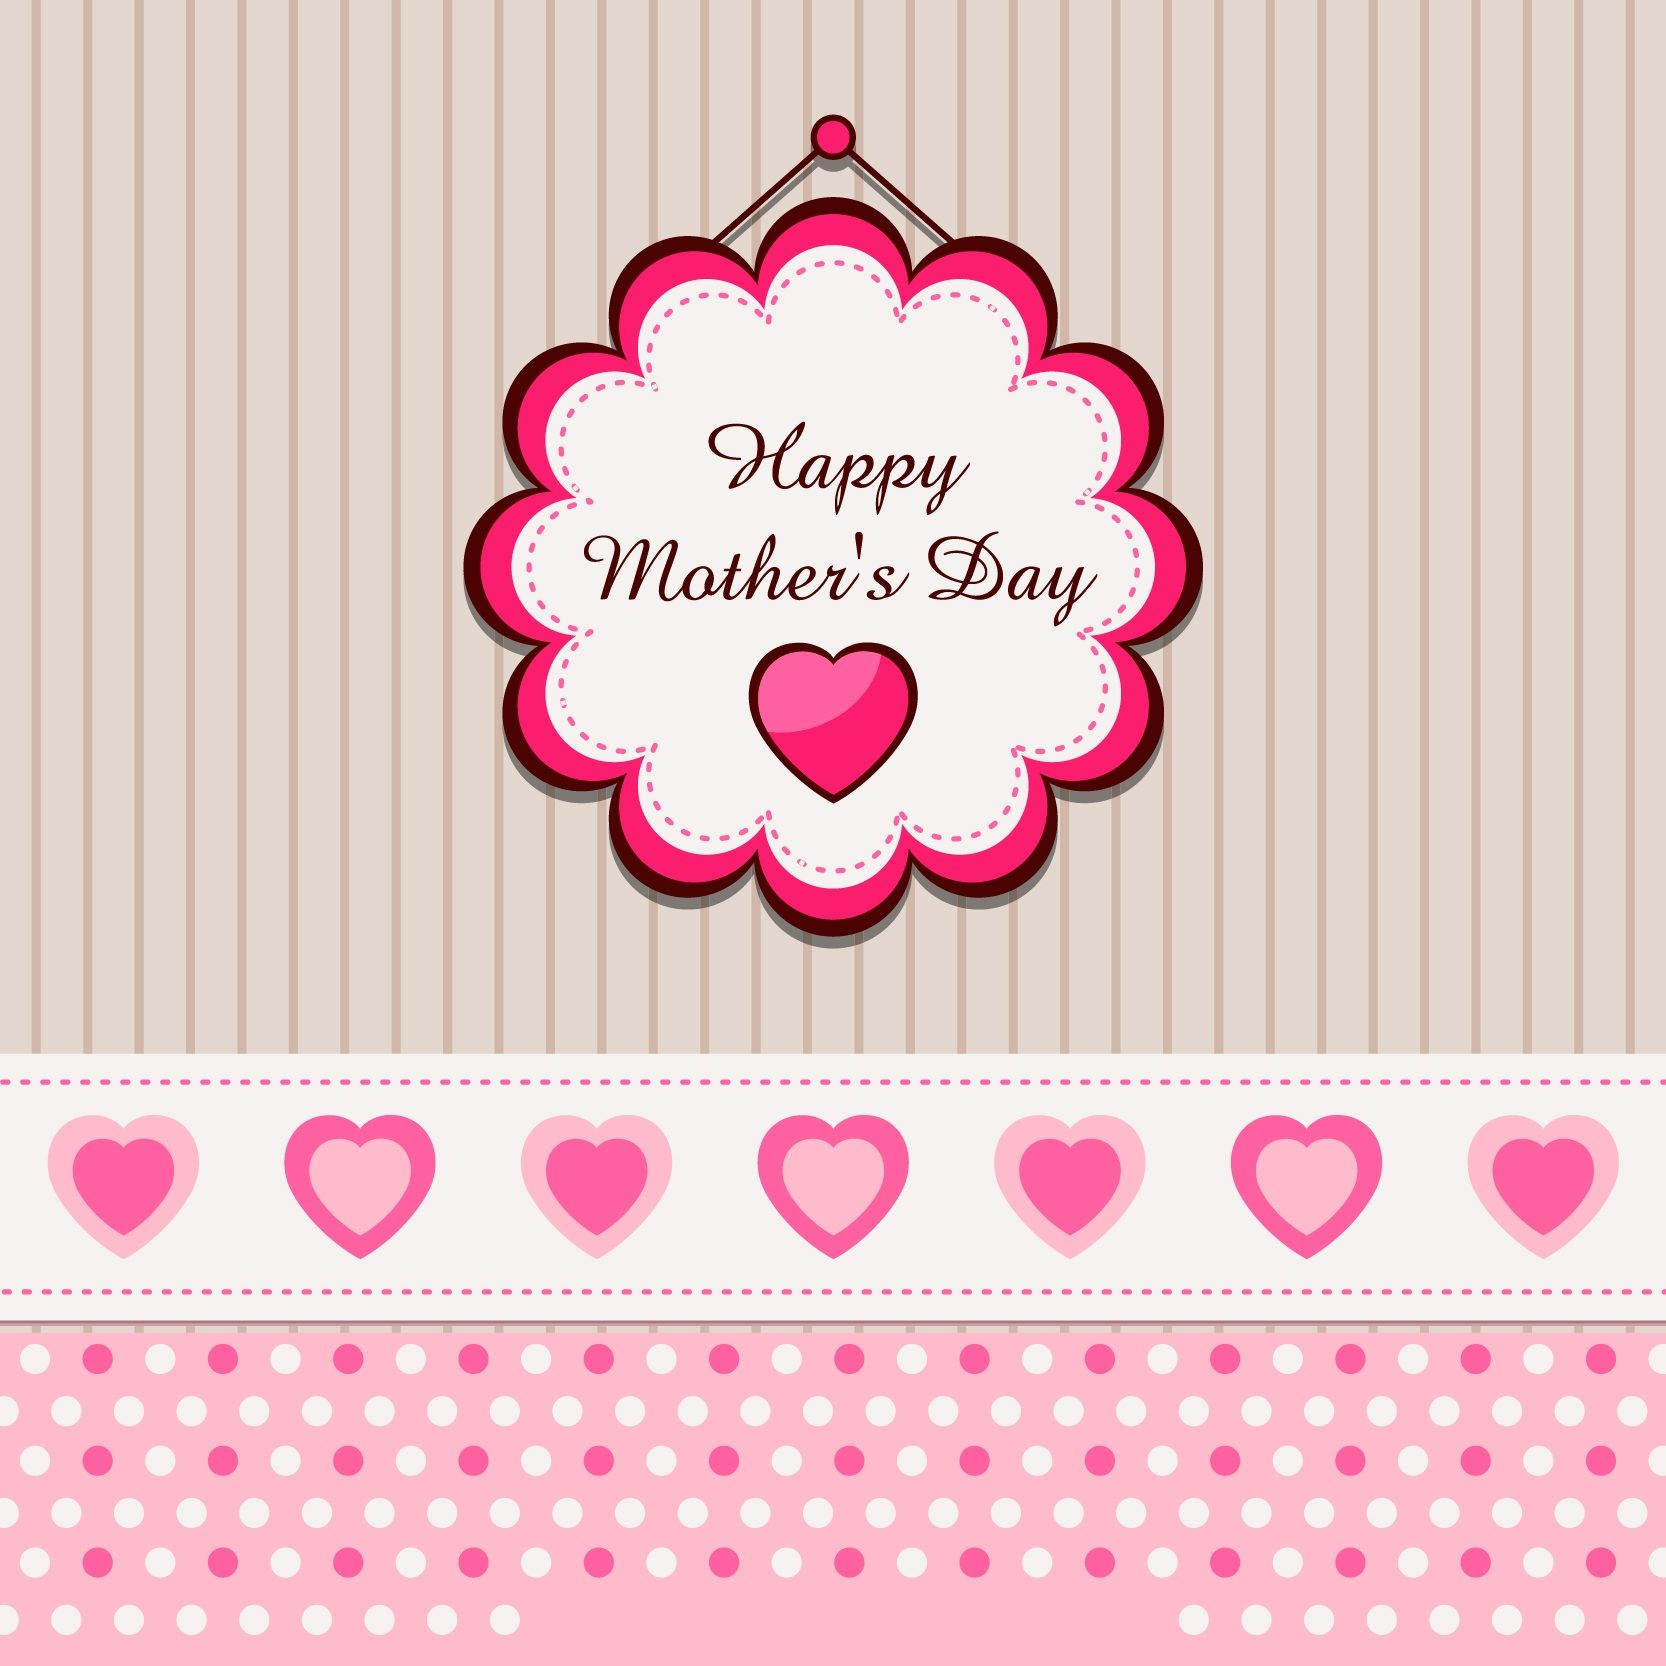 Happy Mothers Day Wallpapers Download Free In Full Hd 1080p Happy